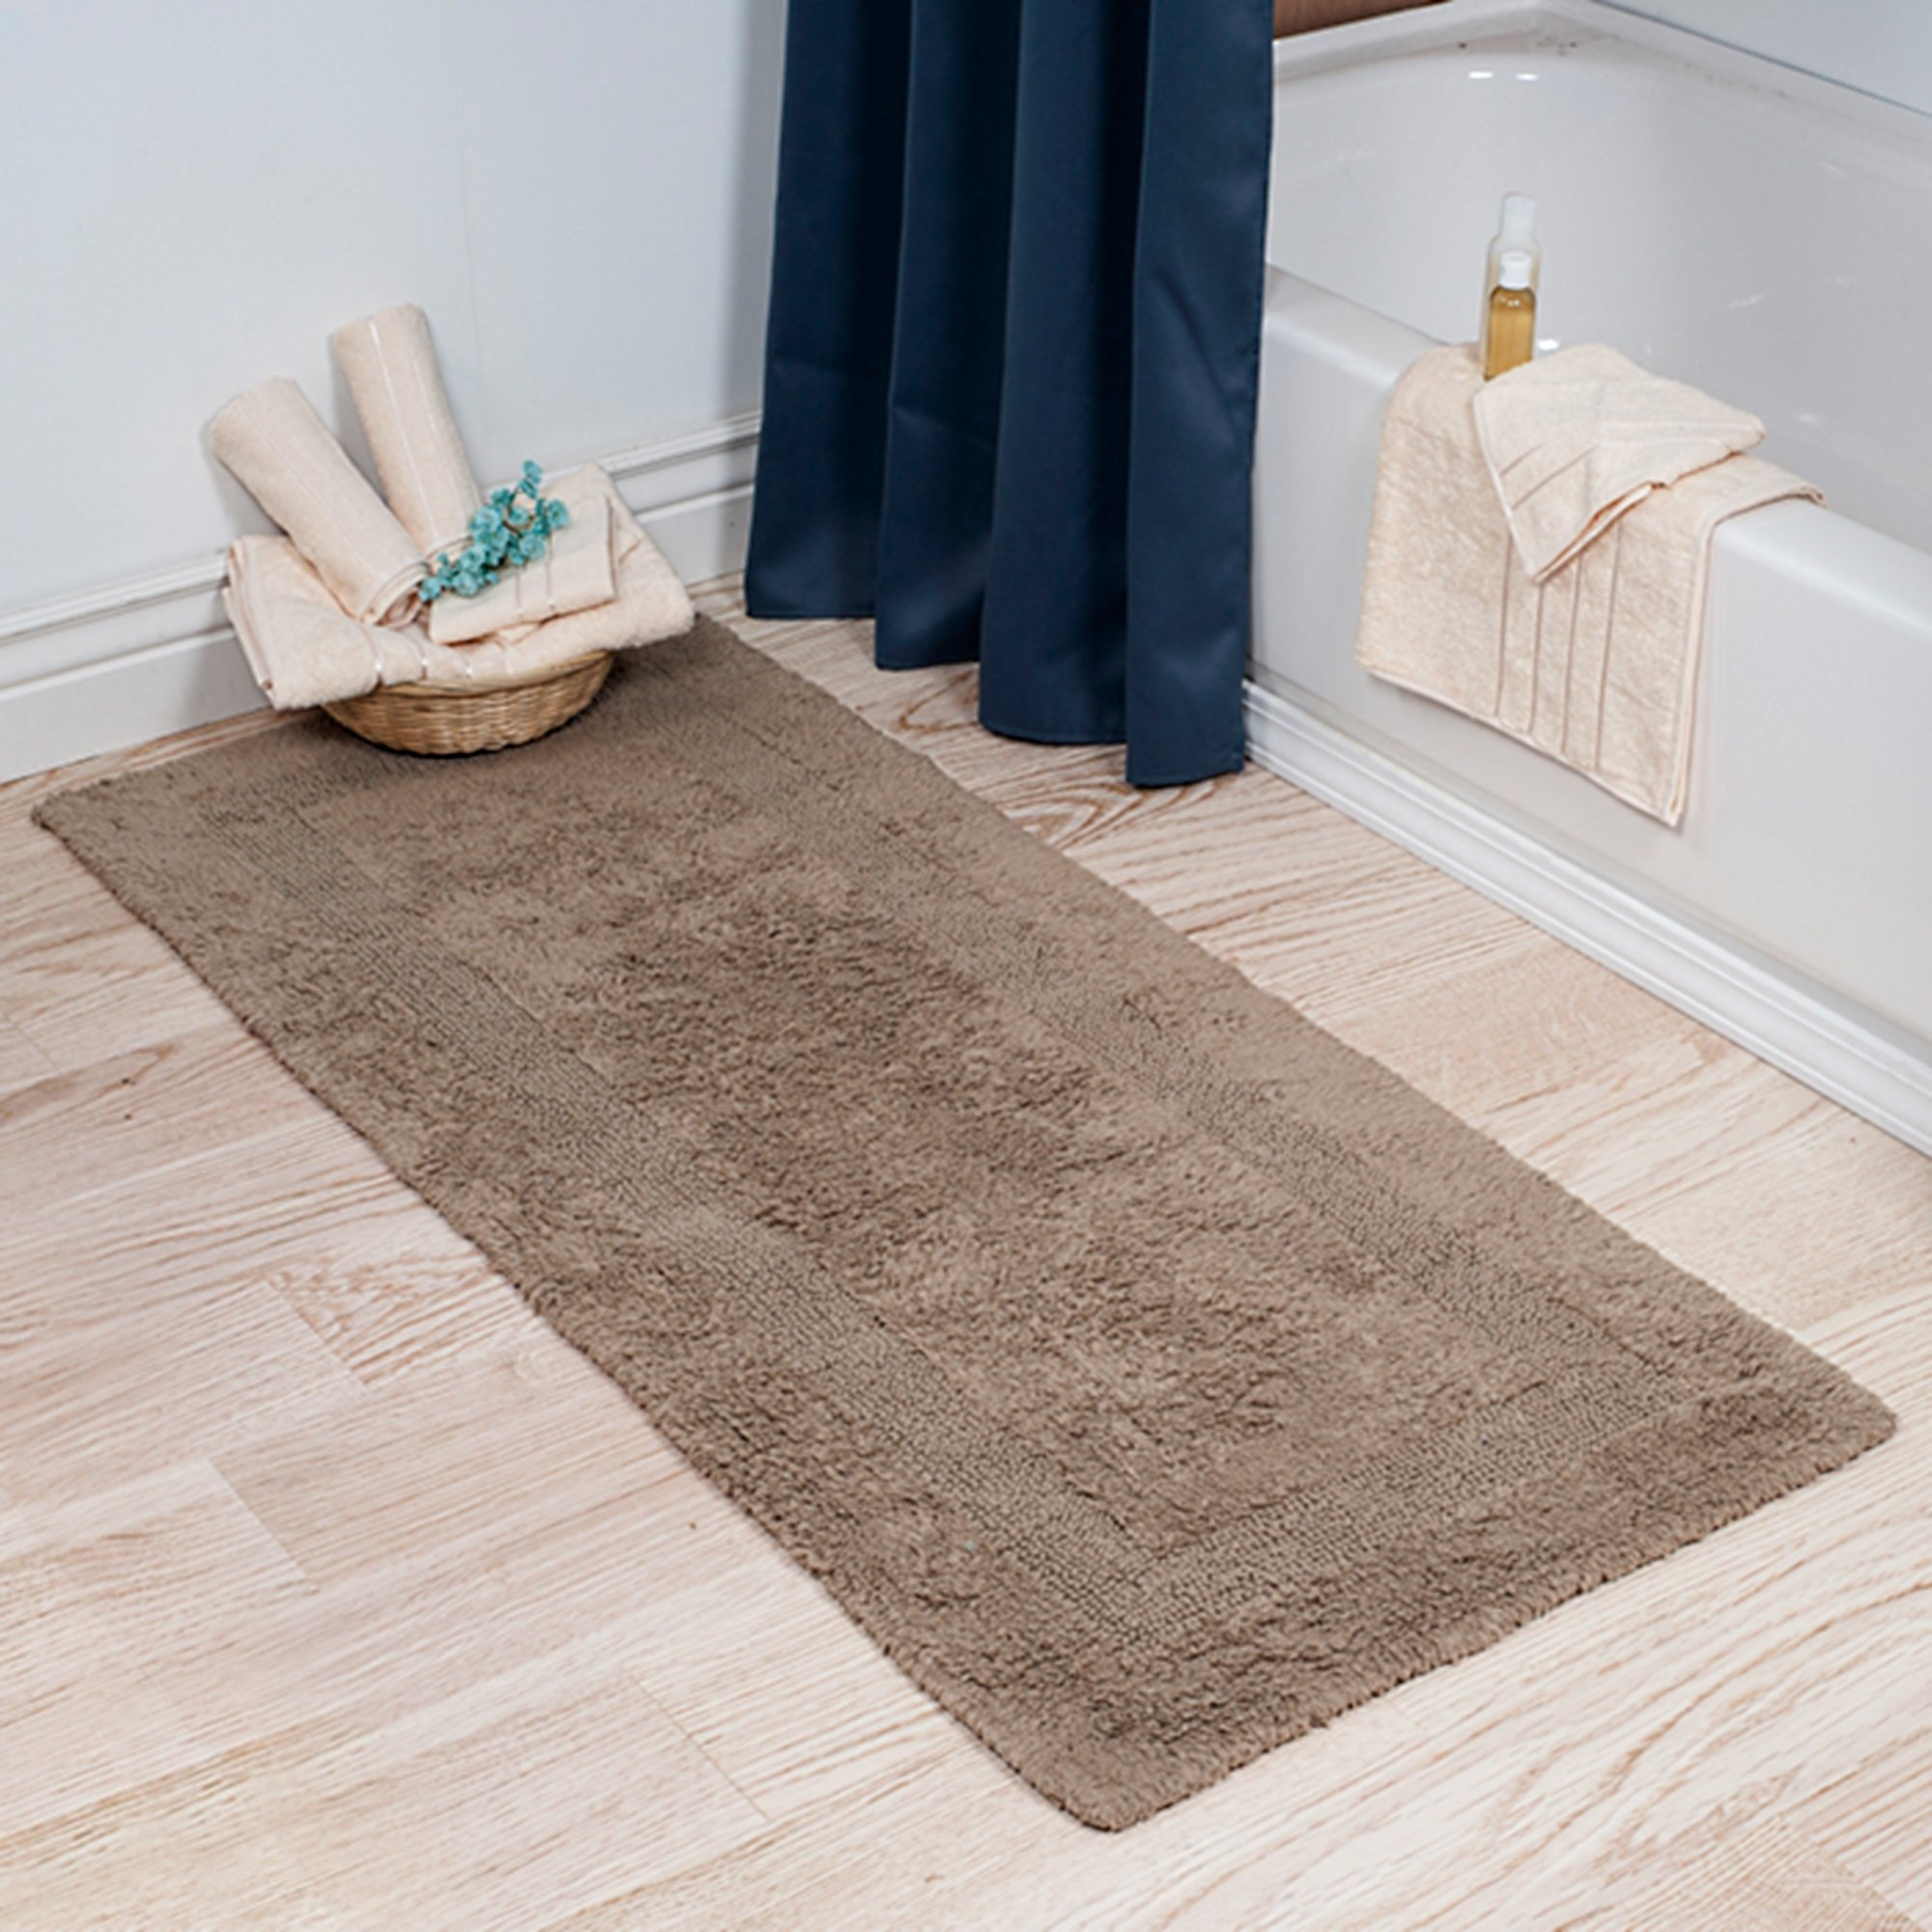 Permalink to Bathroom Rugs And Bathmats